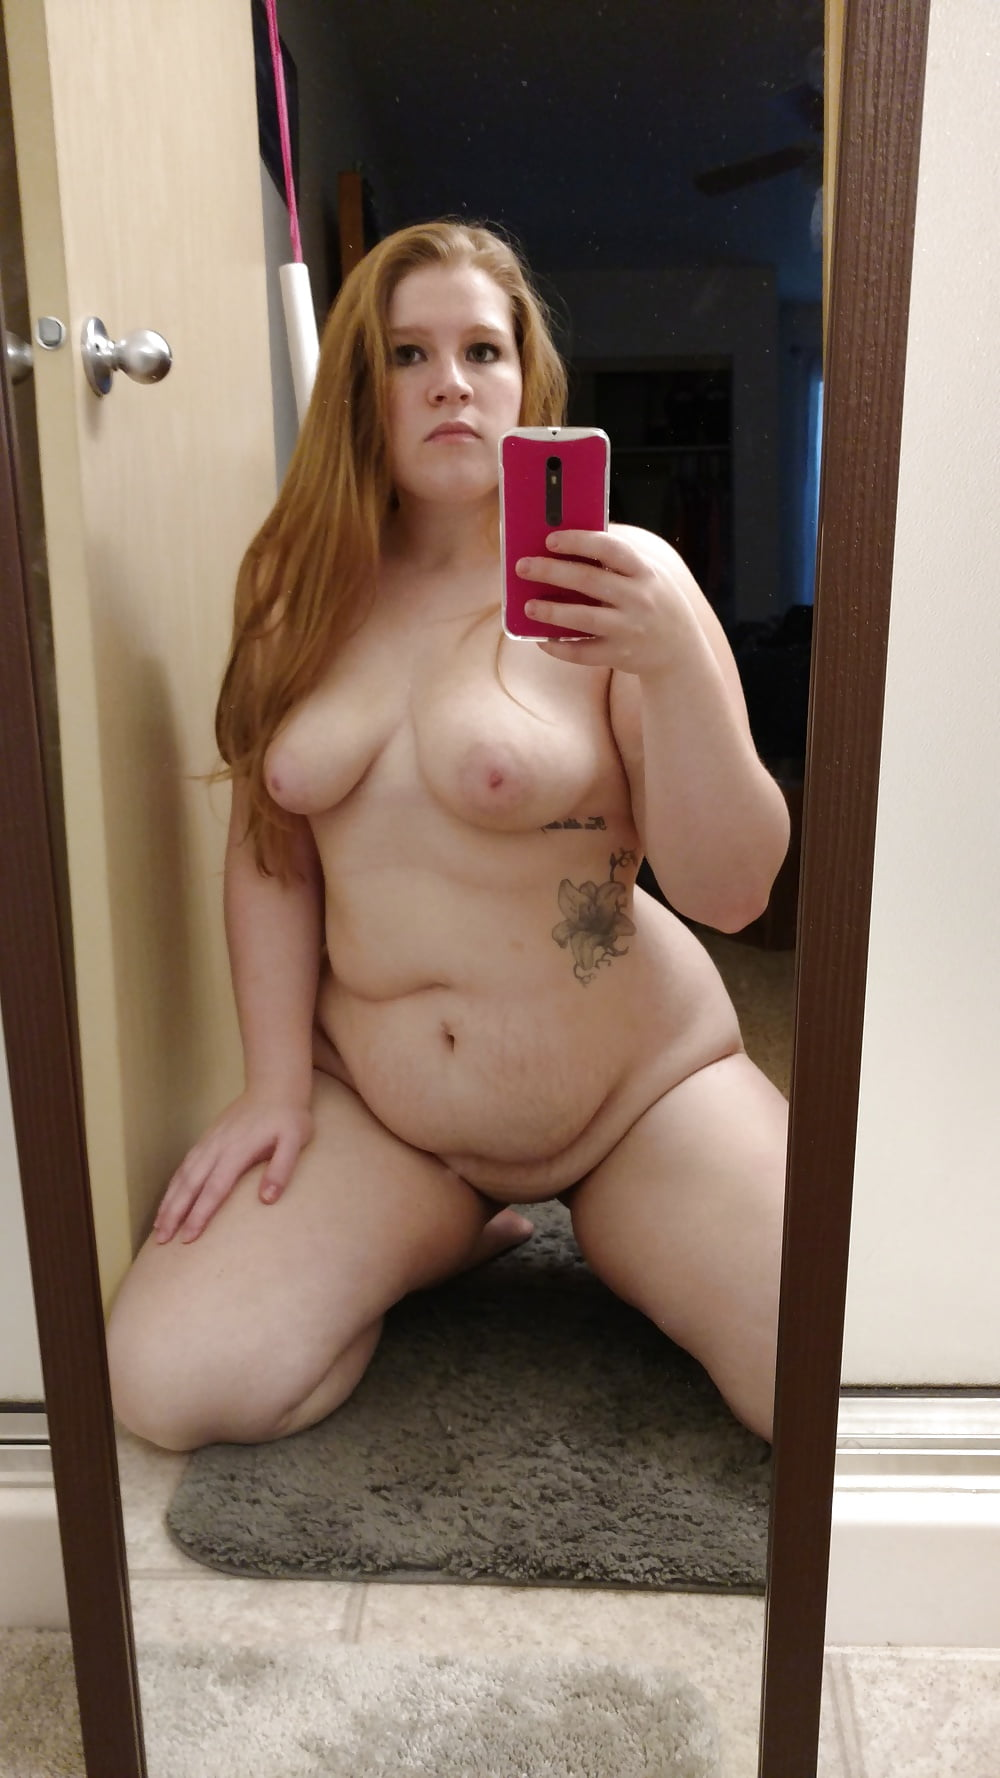 Chubby hotties xhamster, free amateur squrting videos